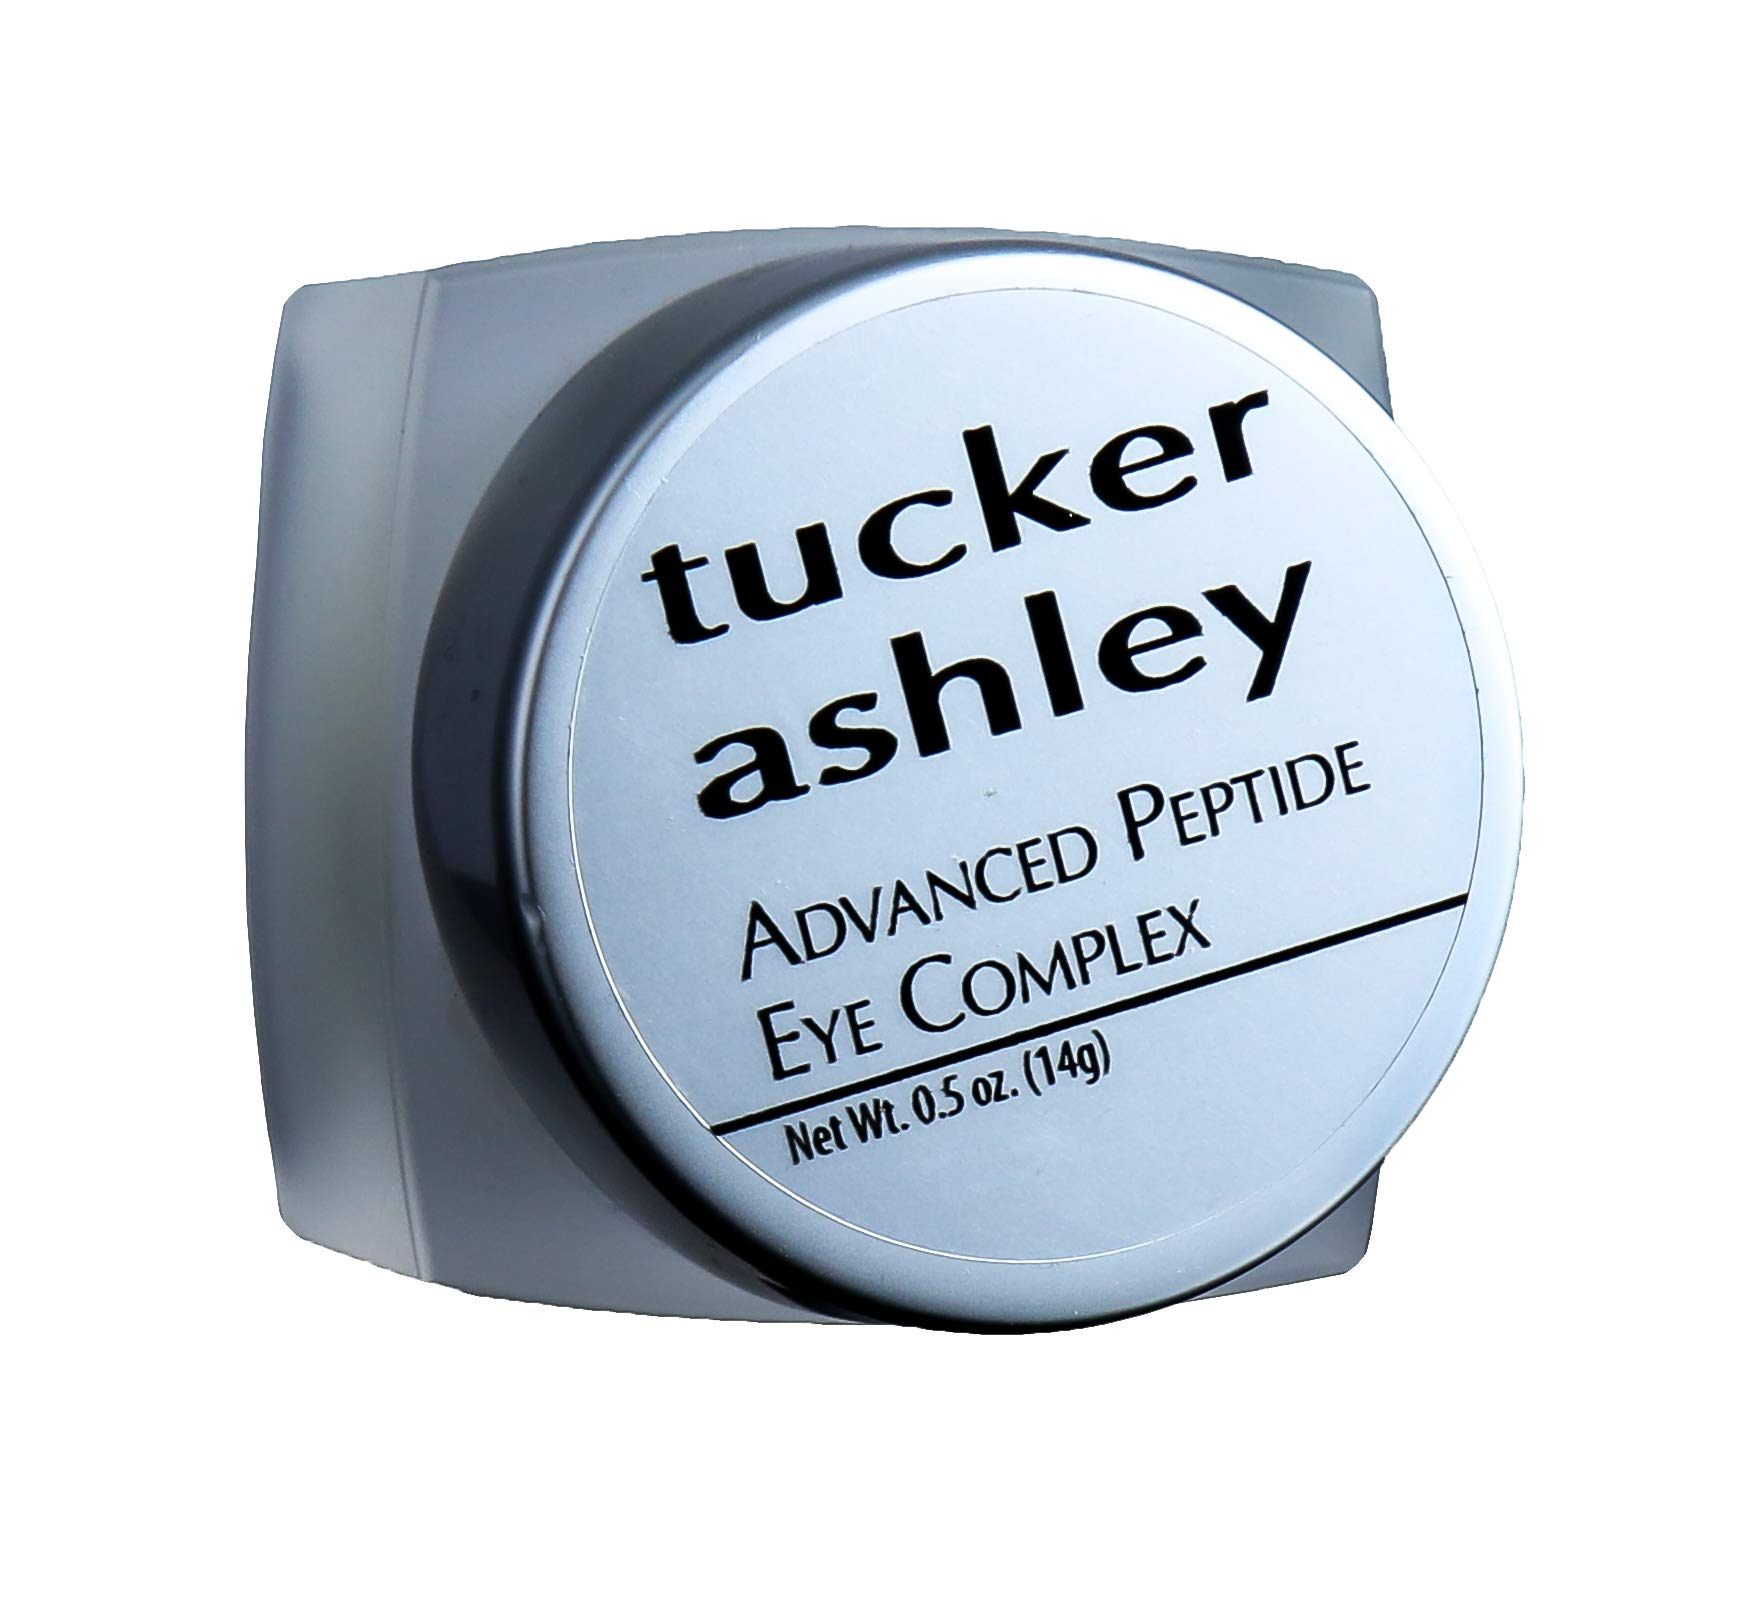 tucker ashley Advanced Peptide Eye Complex, Anti-Aging, Anti-Wrinkle Effect, Helps Reduce Dark Circles, Hydrates, Helps Stimulate Collagen Production, 0.5 oz